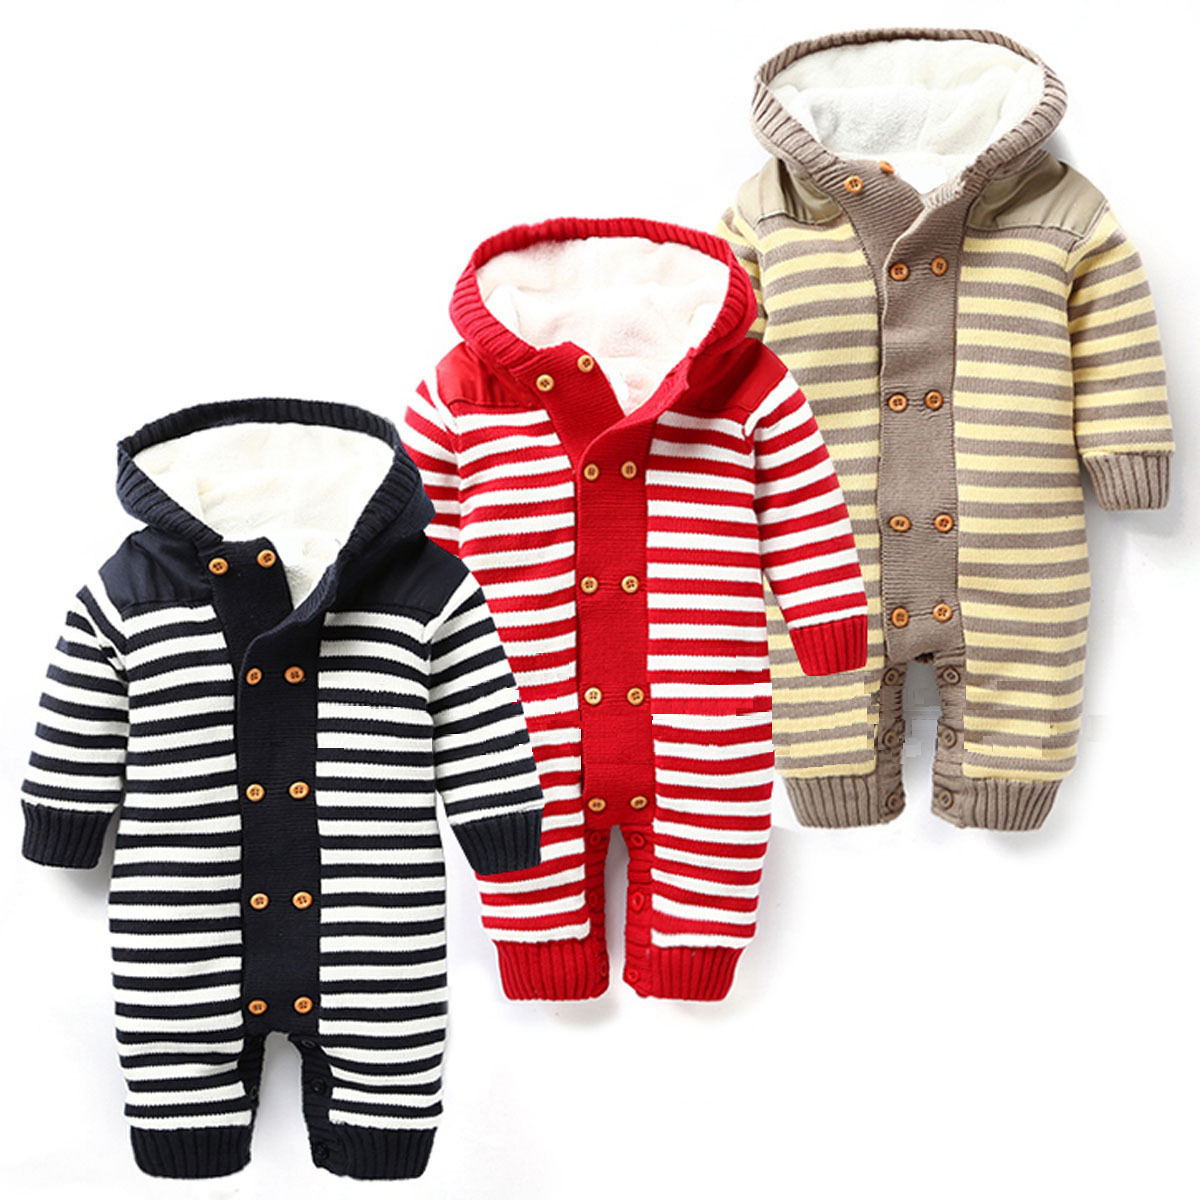 Thick Warm Infant Baby Rompers Winter Clothes Newborn Baby Boy Girl Knitted Sweater Jumpsuit Hooded Kid Toddler Outerwear